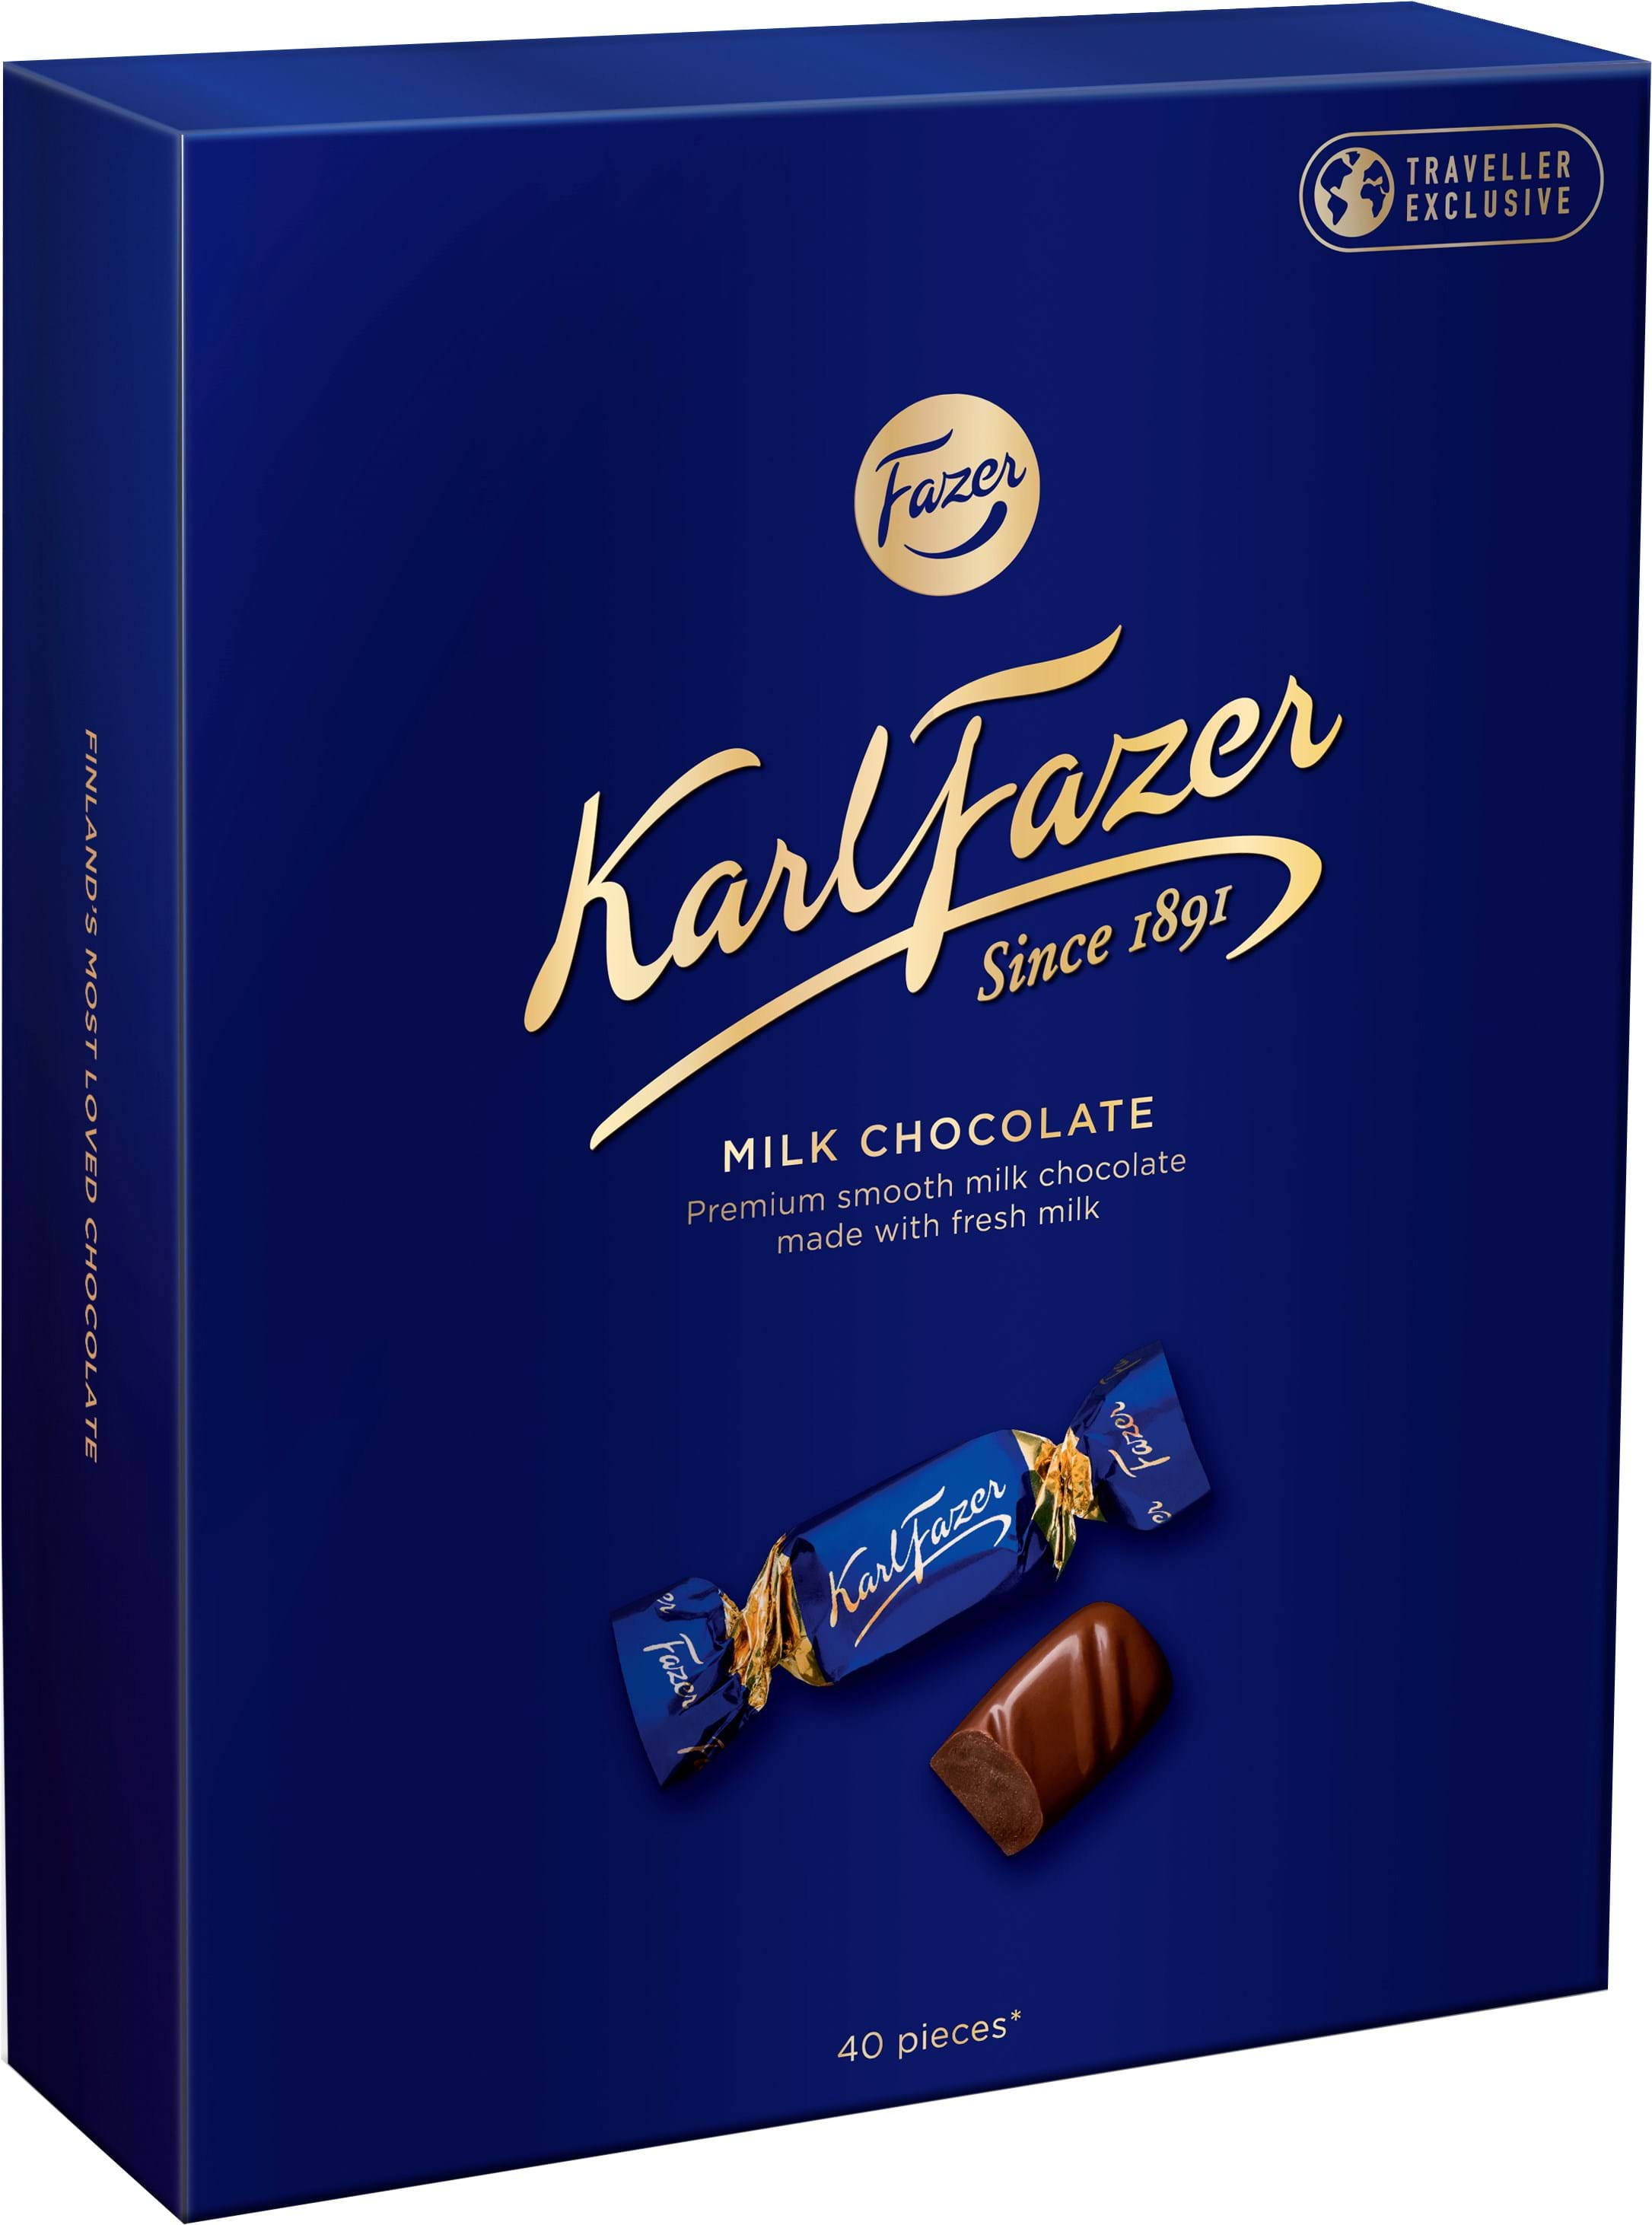 Karl Fazer Milk Chocolate Travel Box 295g